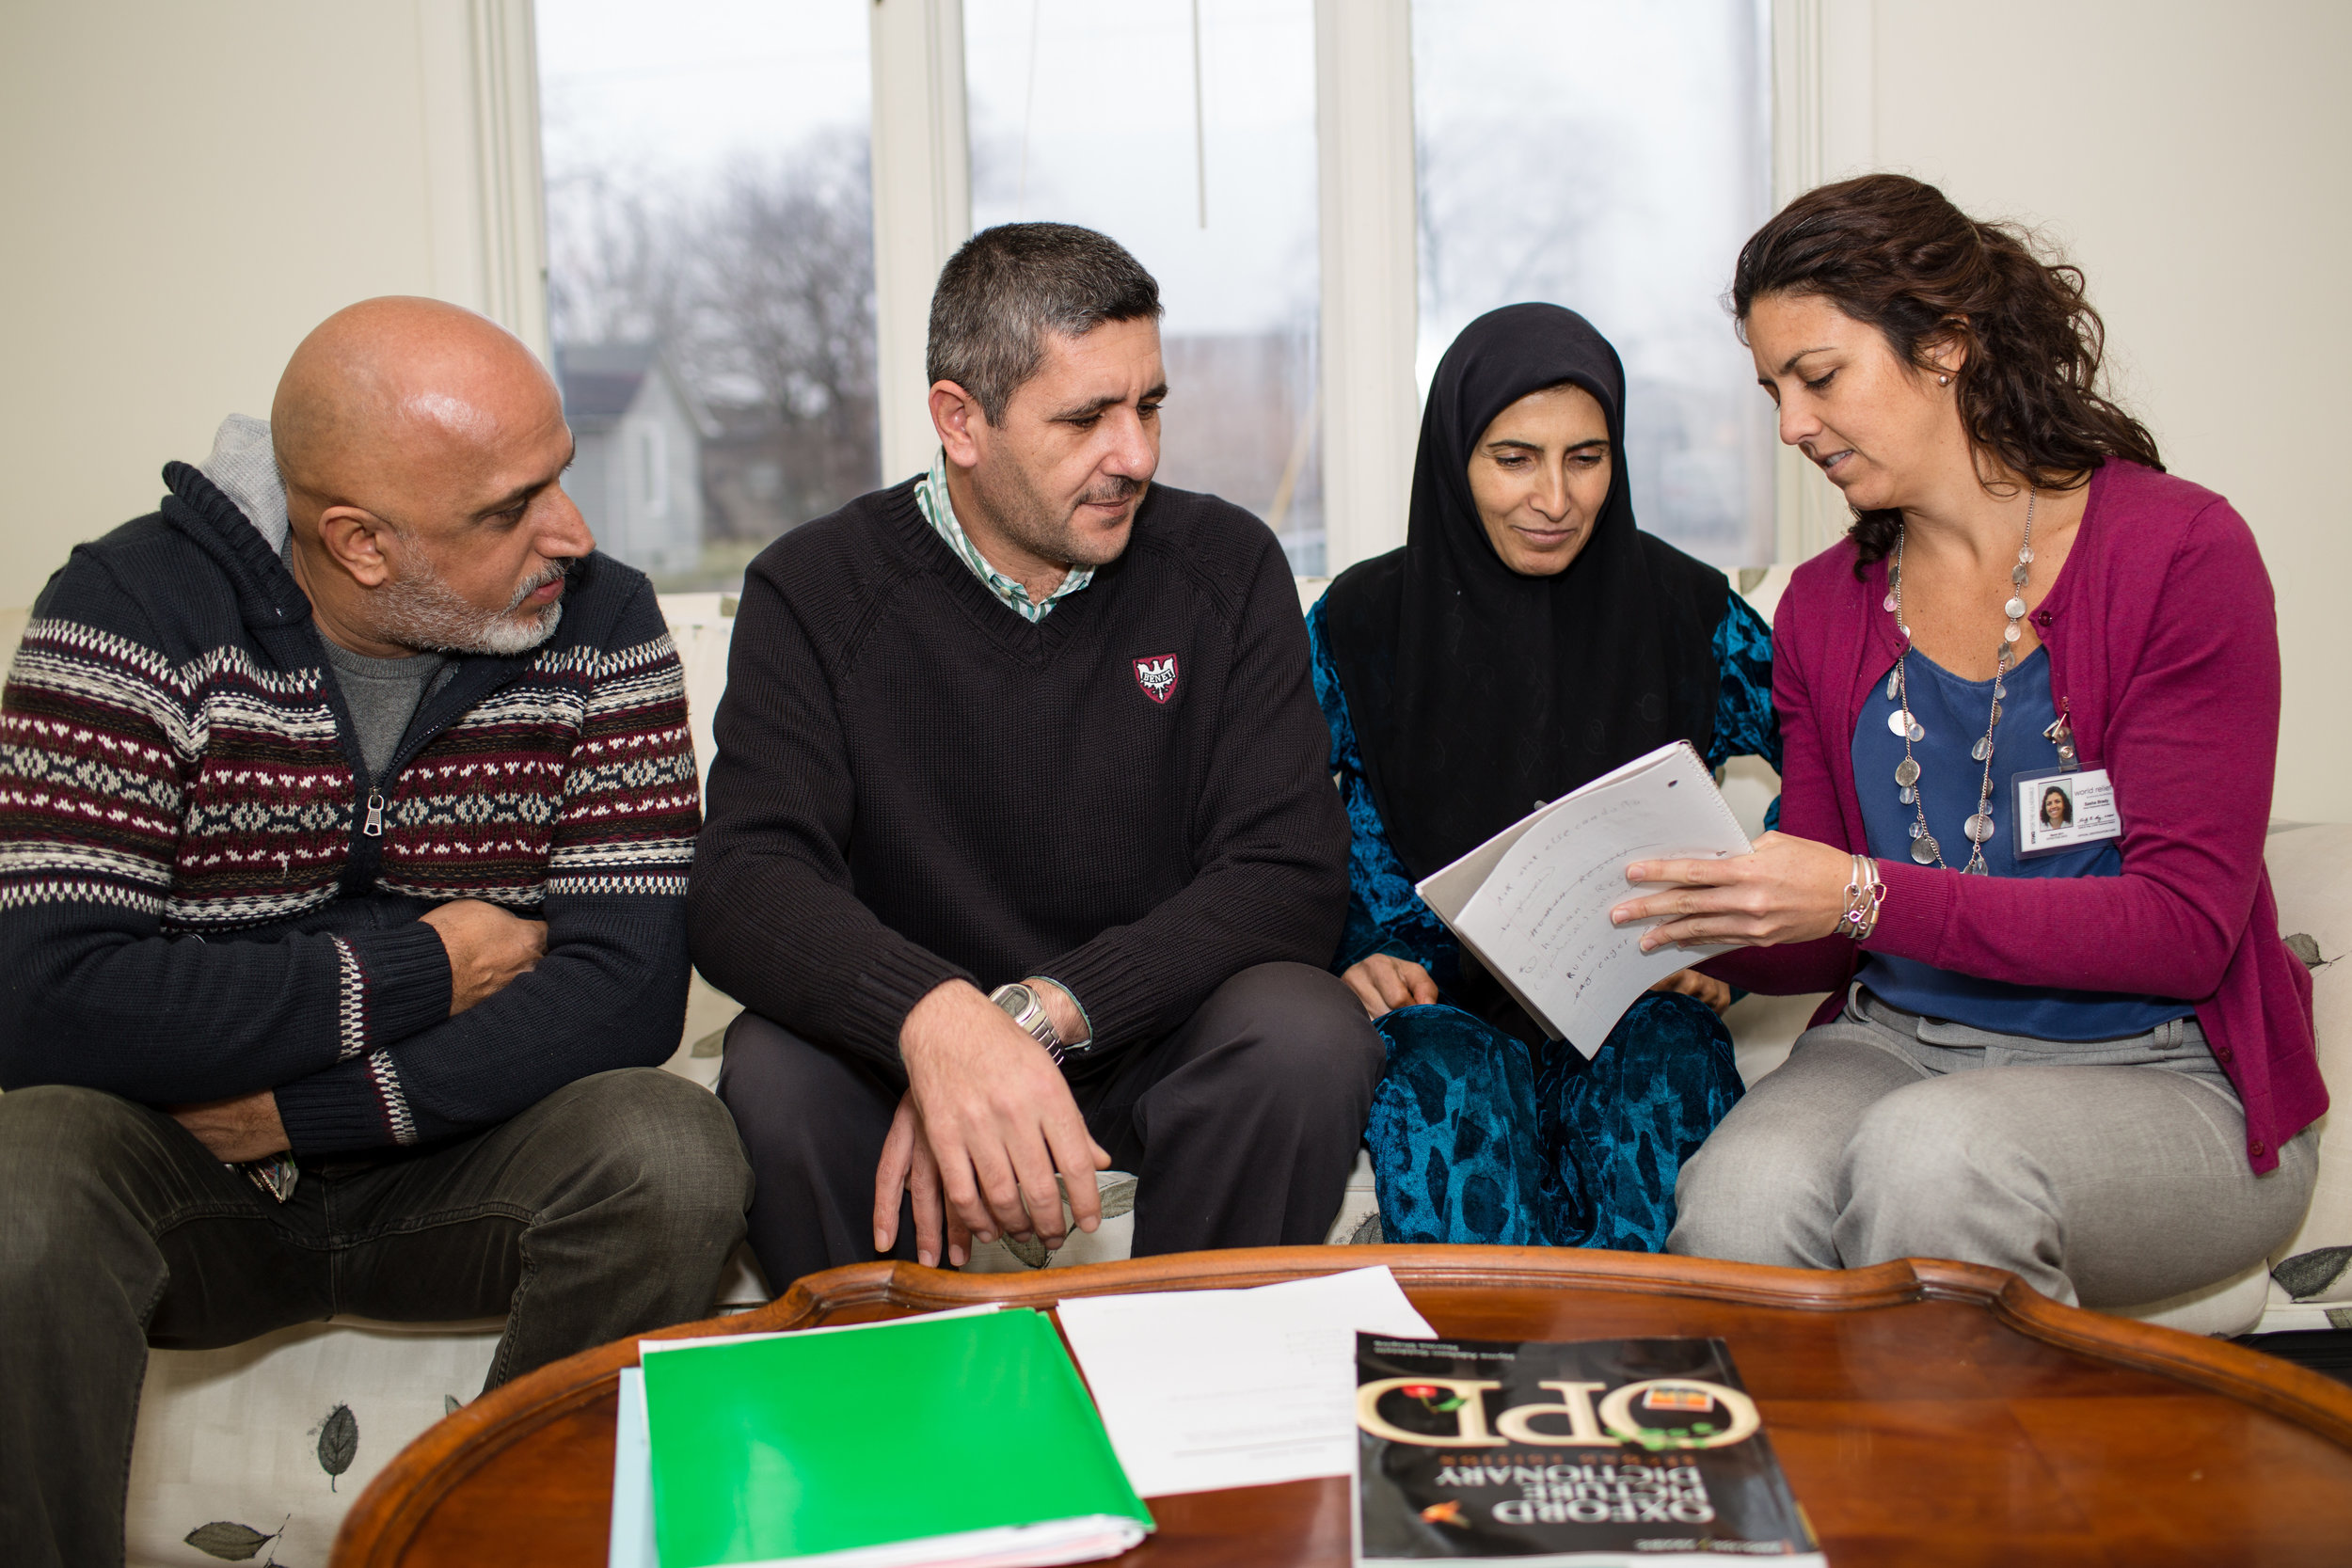 Sasha, World Relief Employment Specialist, assists Ammar & Fatma, Syrian refugee parents of four children, who have been recently resettled by World Relief in Aurora, Illinois. Alaa (pictured, left) works with Sasha to help translate the conversation.